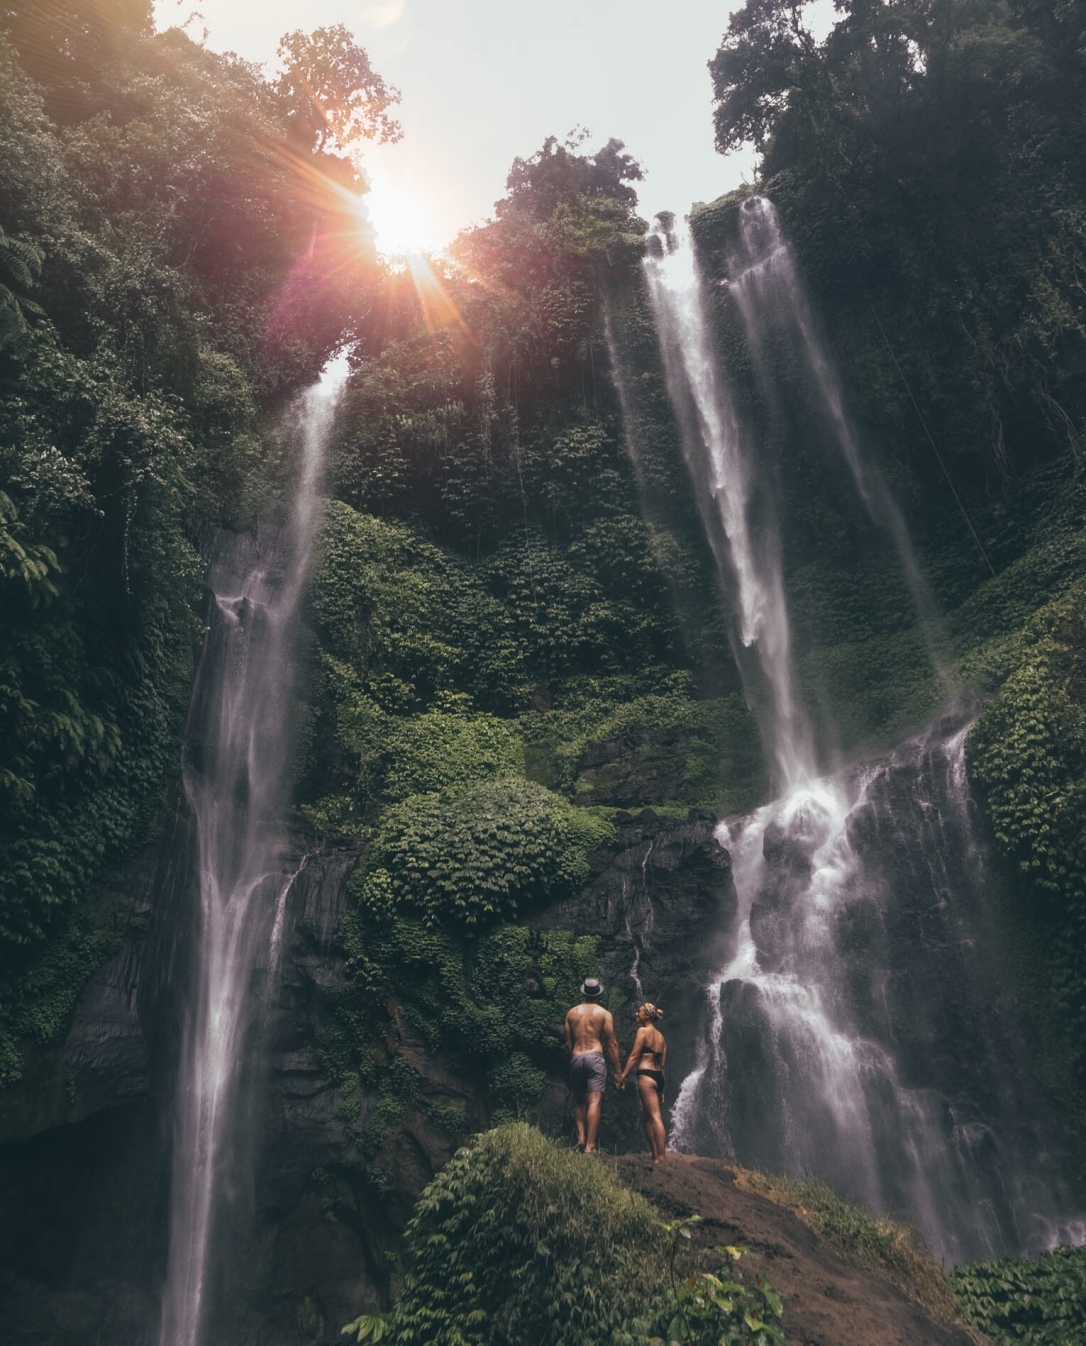 Bali, Sekumpul waterfall, Indonesia Salt and Cocnuts, Find Louis, Louis Russell, Sarah Lias, Couple, Travel, Explore, Jungle, Photography